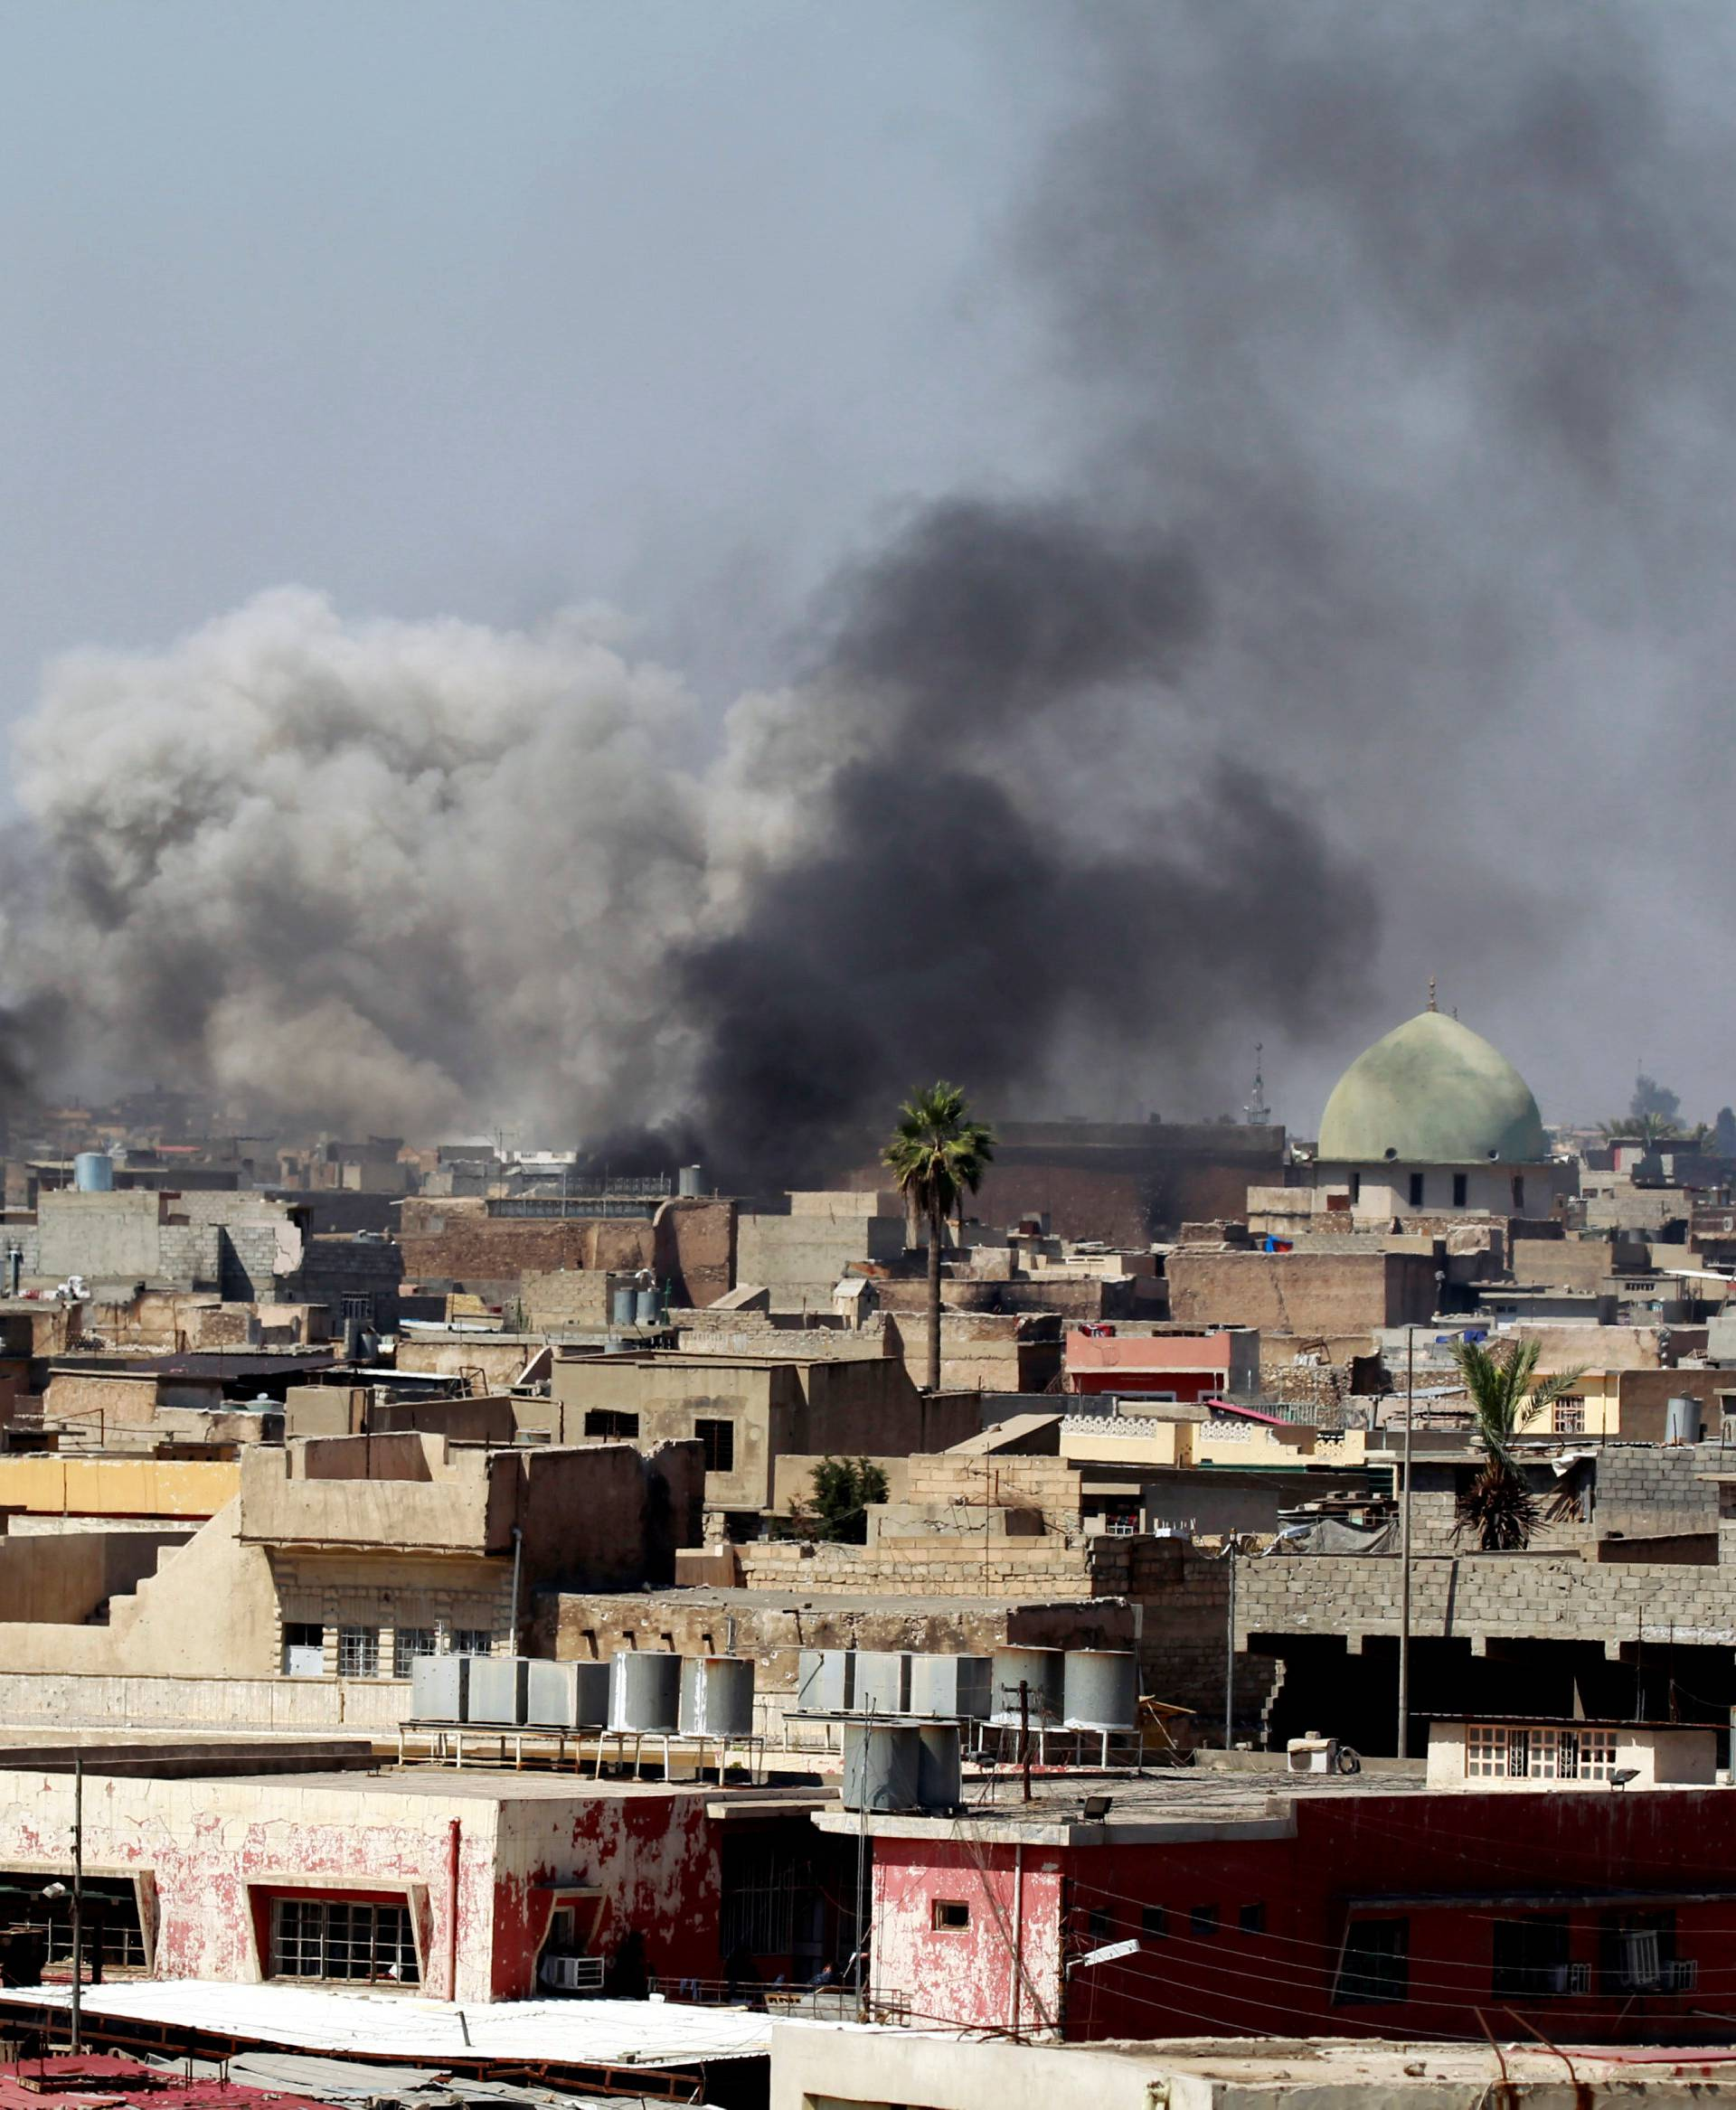 Smoke rises over the city during clashes between Iraqi forces and Islamic State militants, in Mosul